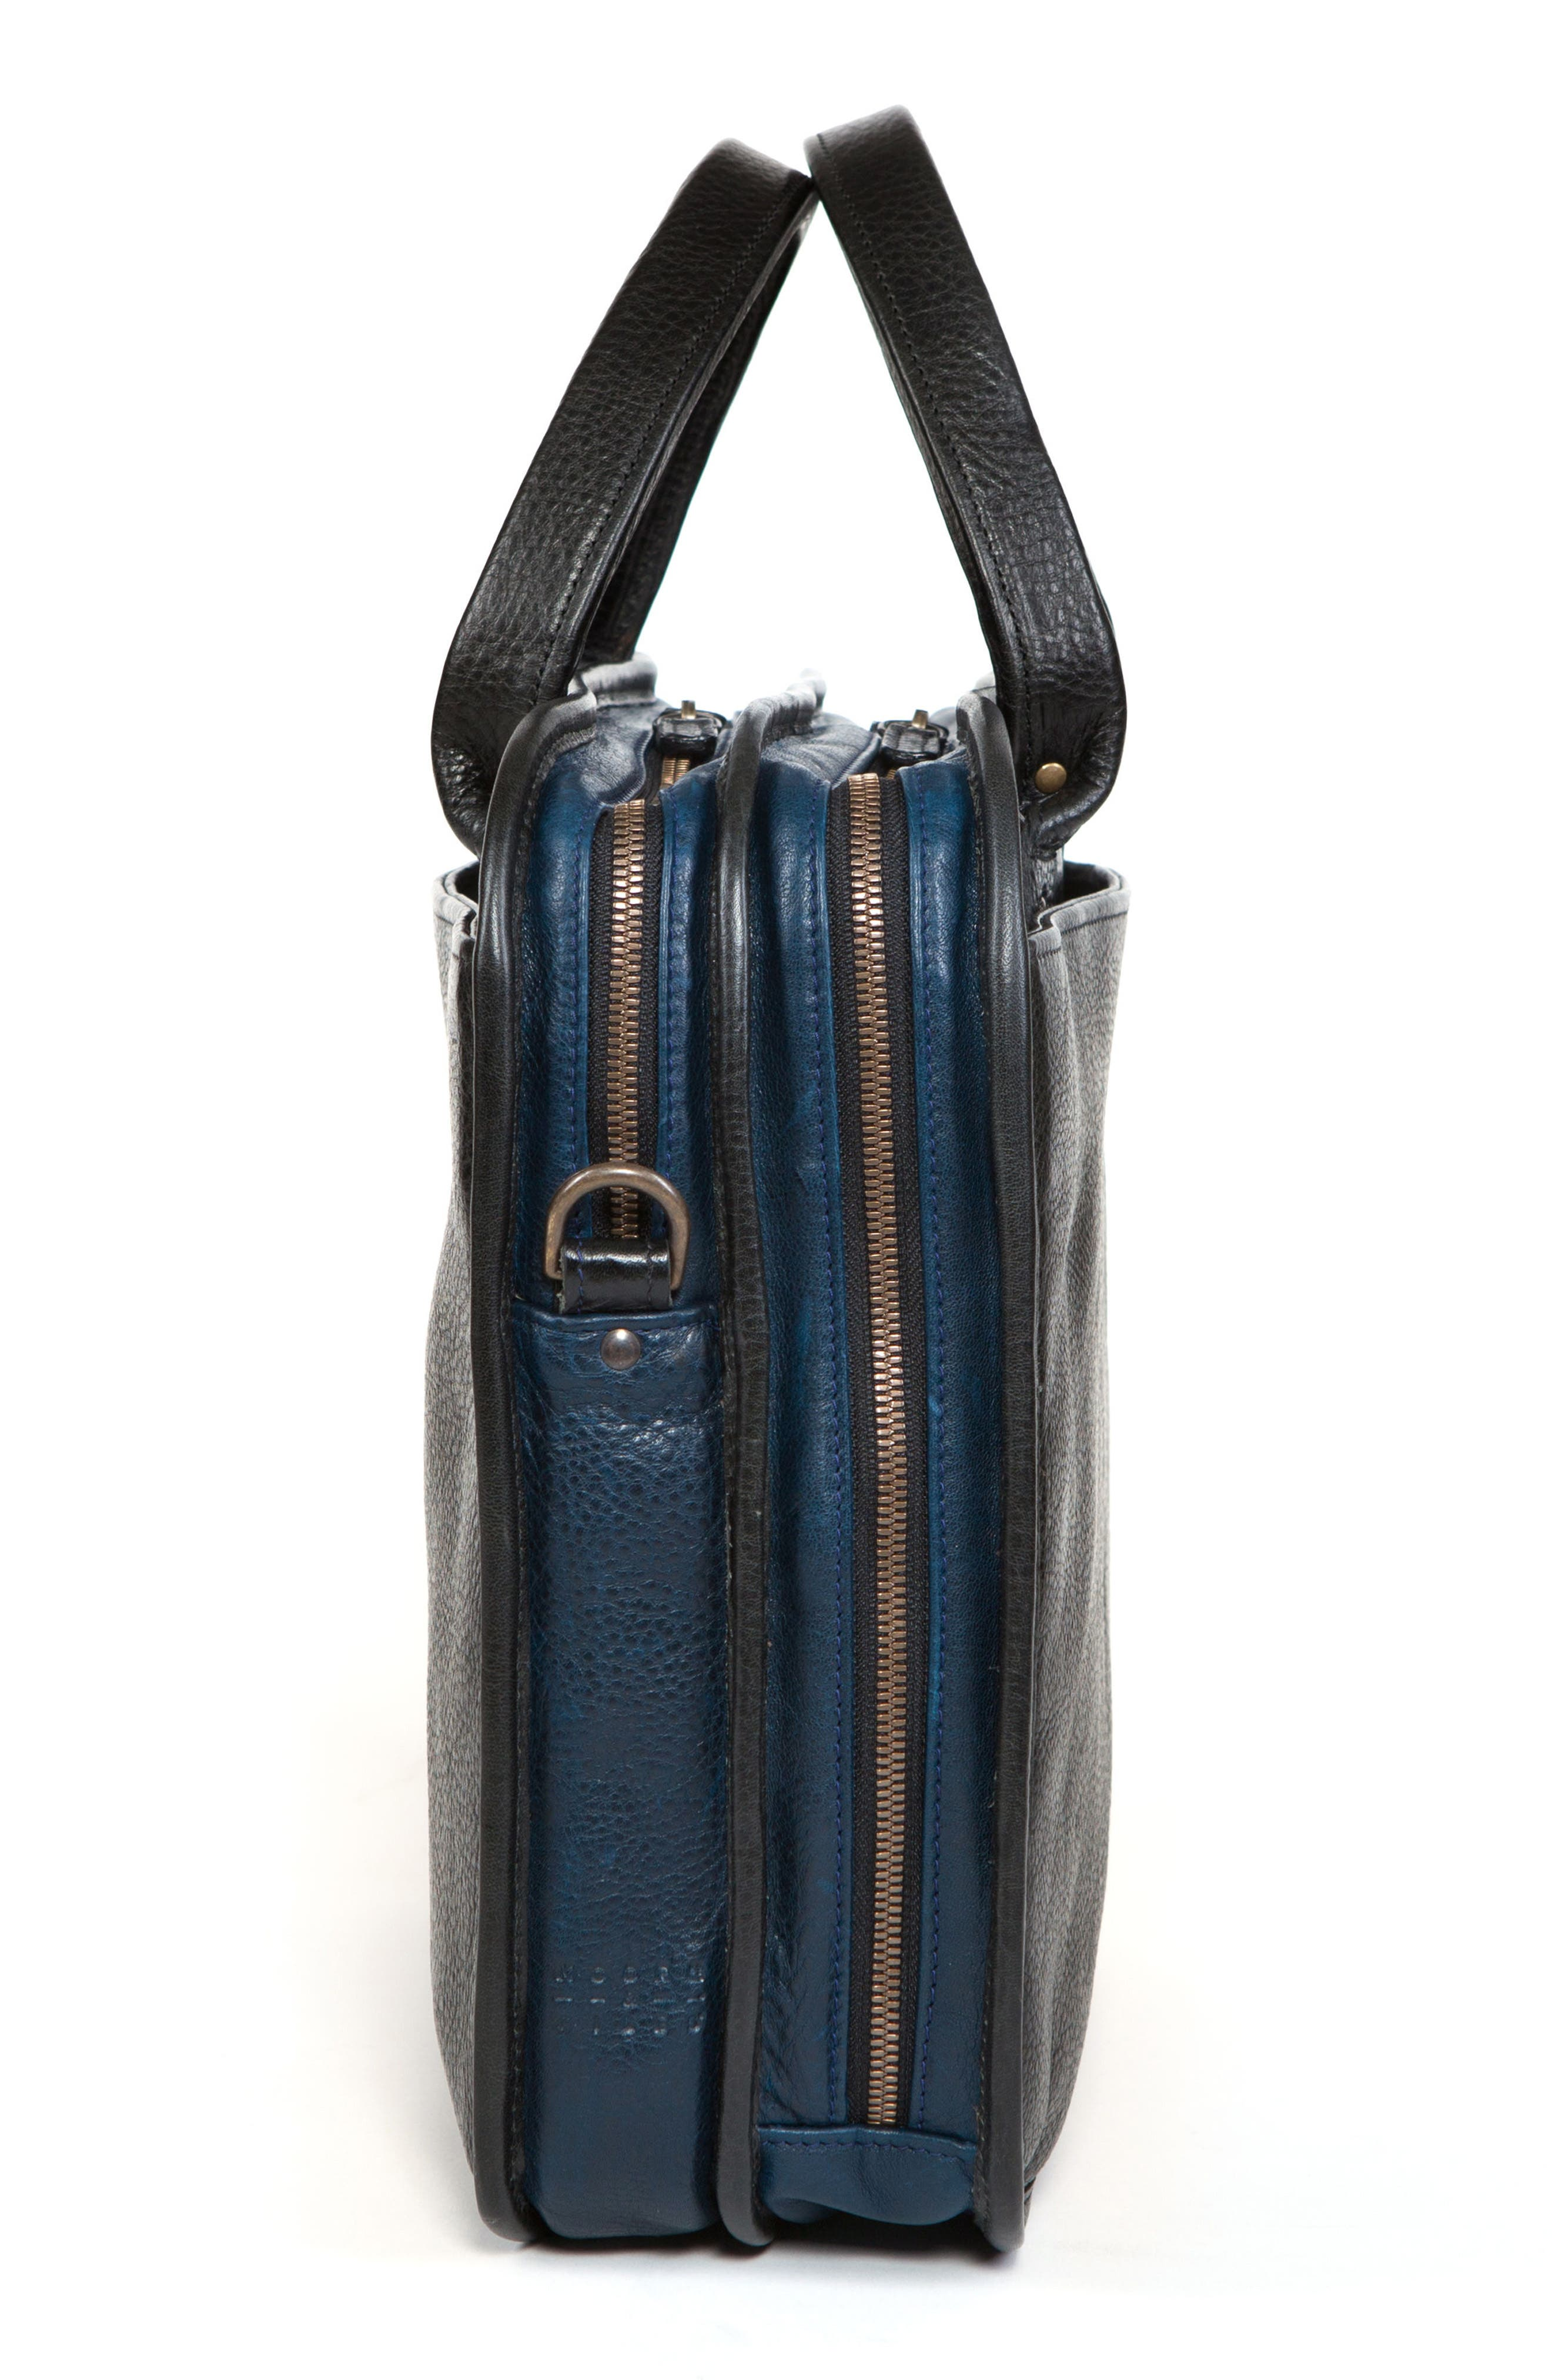 Miller Leather Briefcase,                             Alternate thumbnail 12, color,                             Titan Milled Navy And Gunmetal